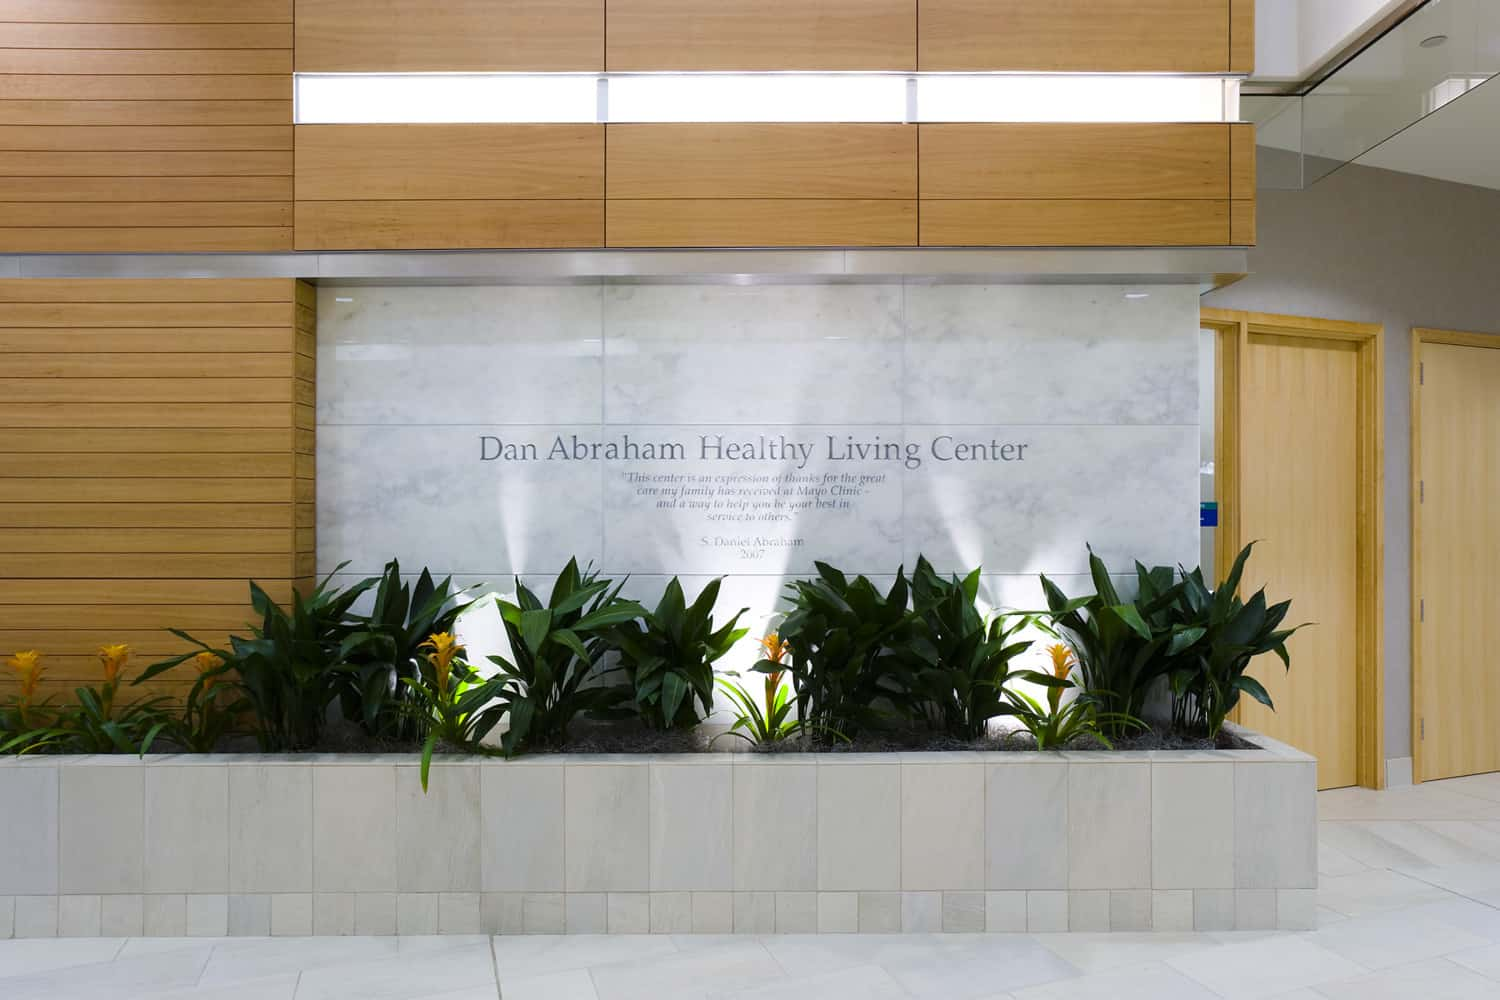 MAYO CLINIC DAN ABRAHAM HEALTHY LIVING CENTER